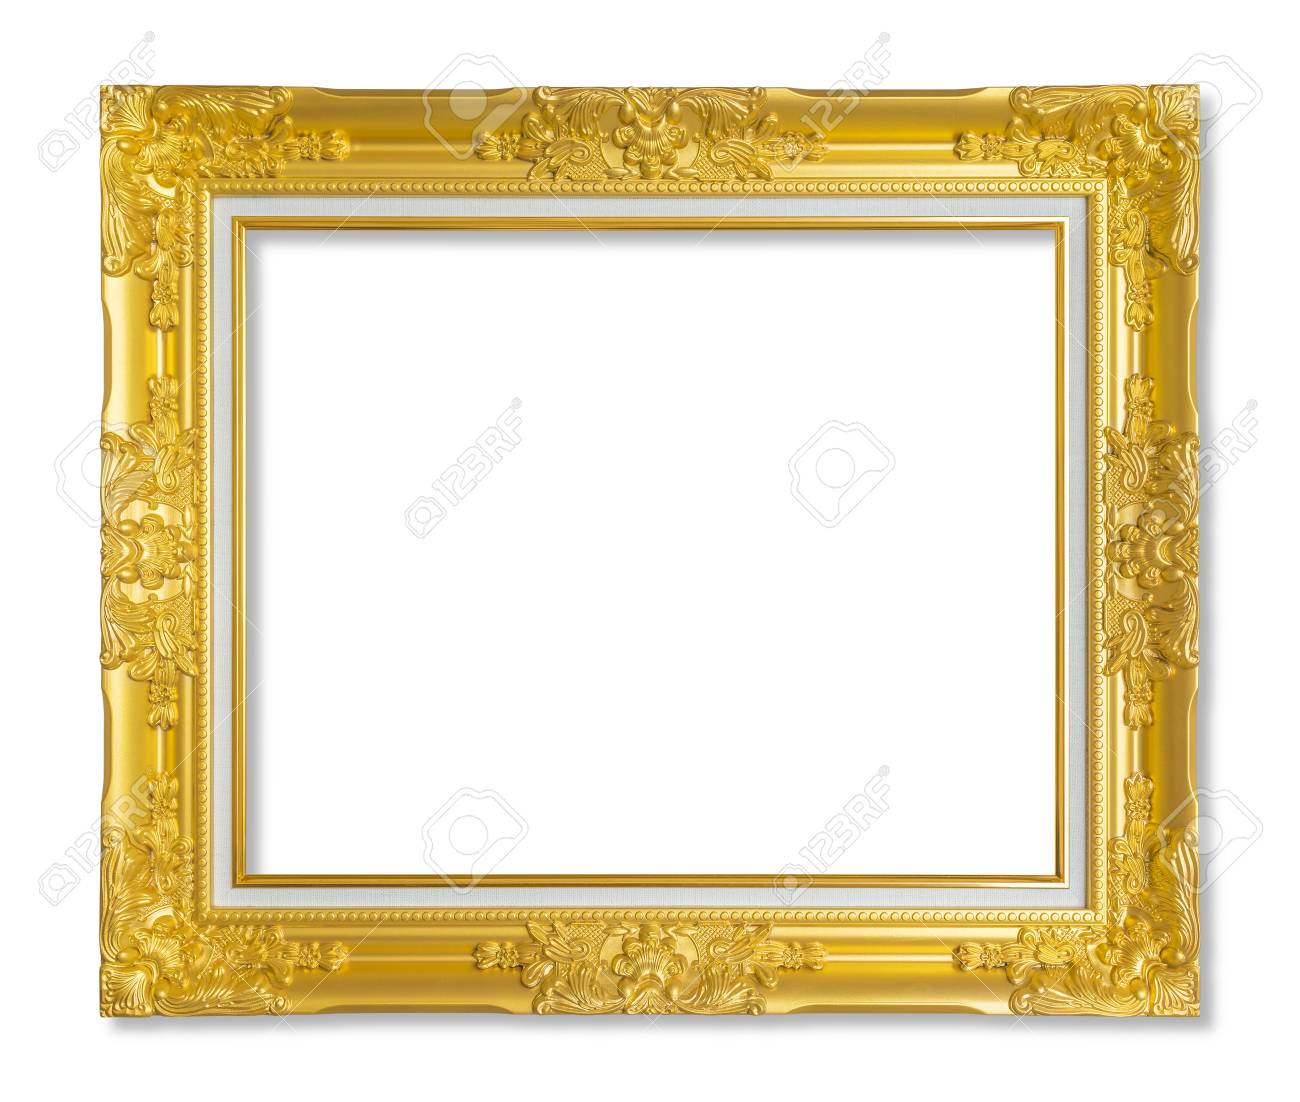 e93e26229d8 Gold frame for painting or picture on white background. Stock Photo -  101703333